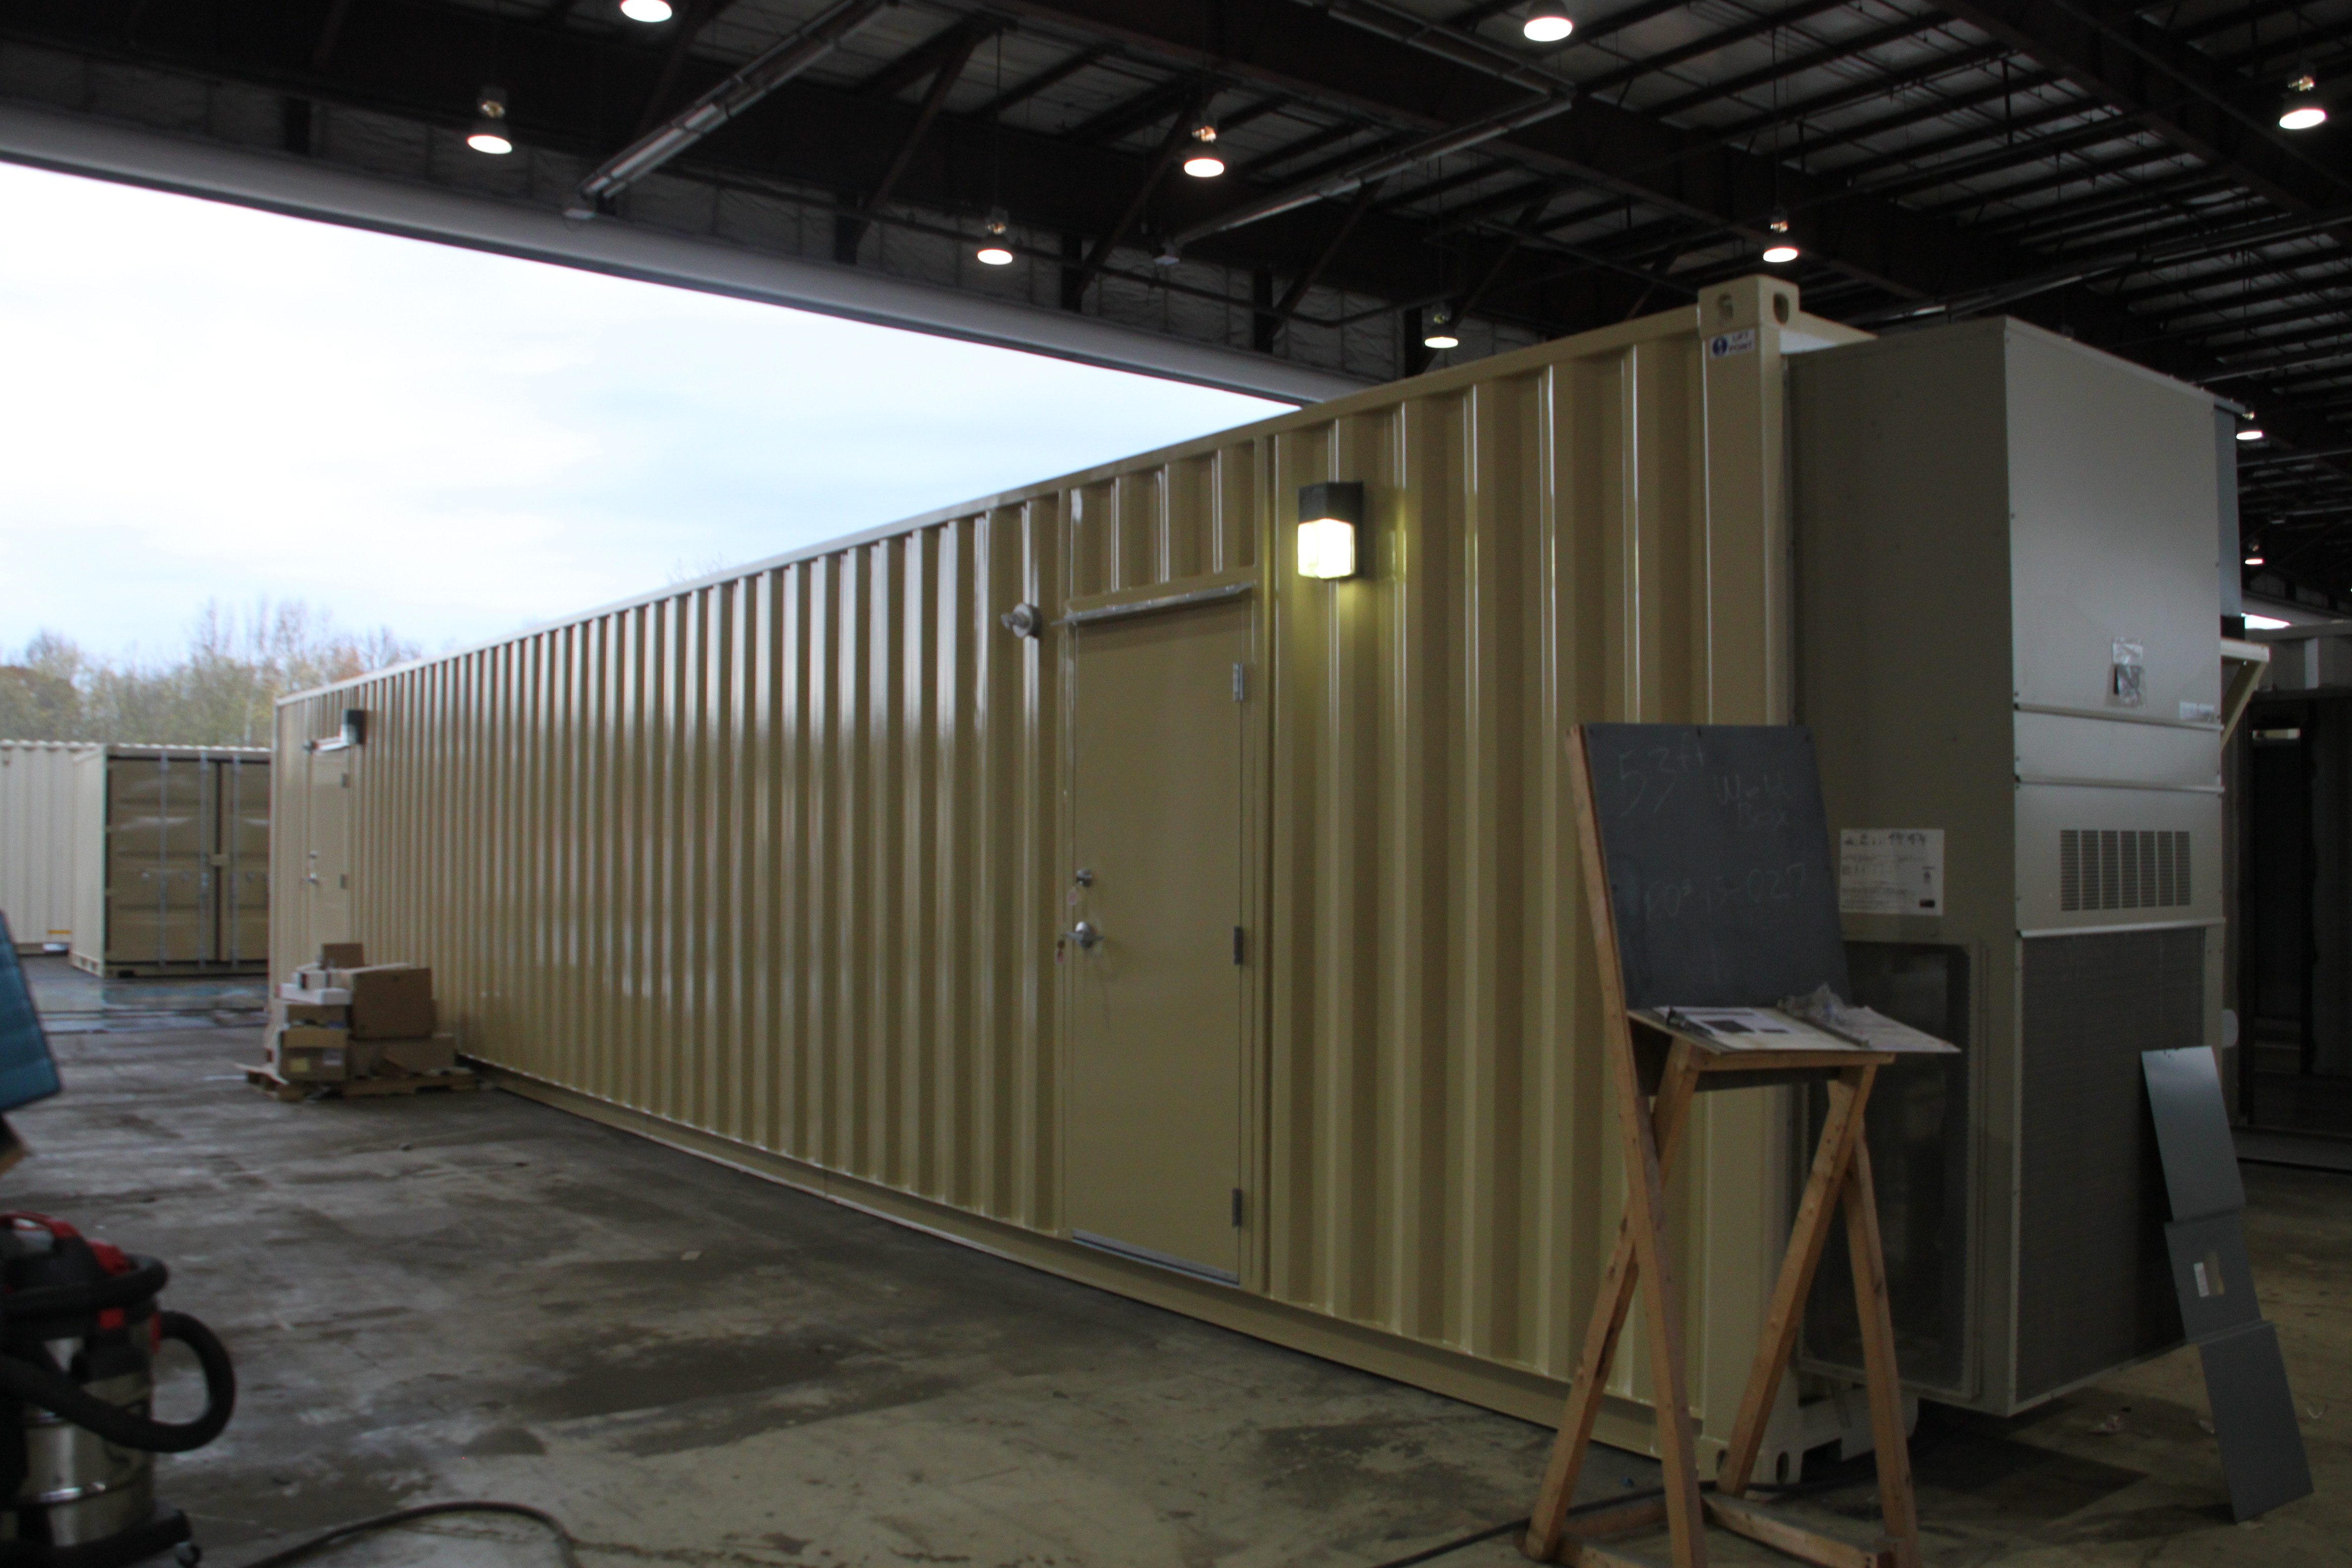 Welding Station, DropBox Inc, shipping container modifications, portable welding station, containerized welding station, modular welding training station, welding testing station